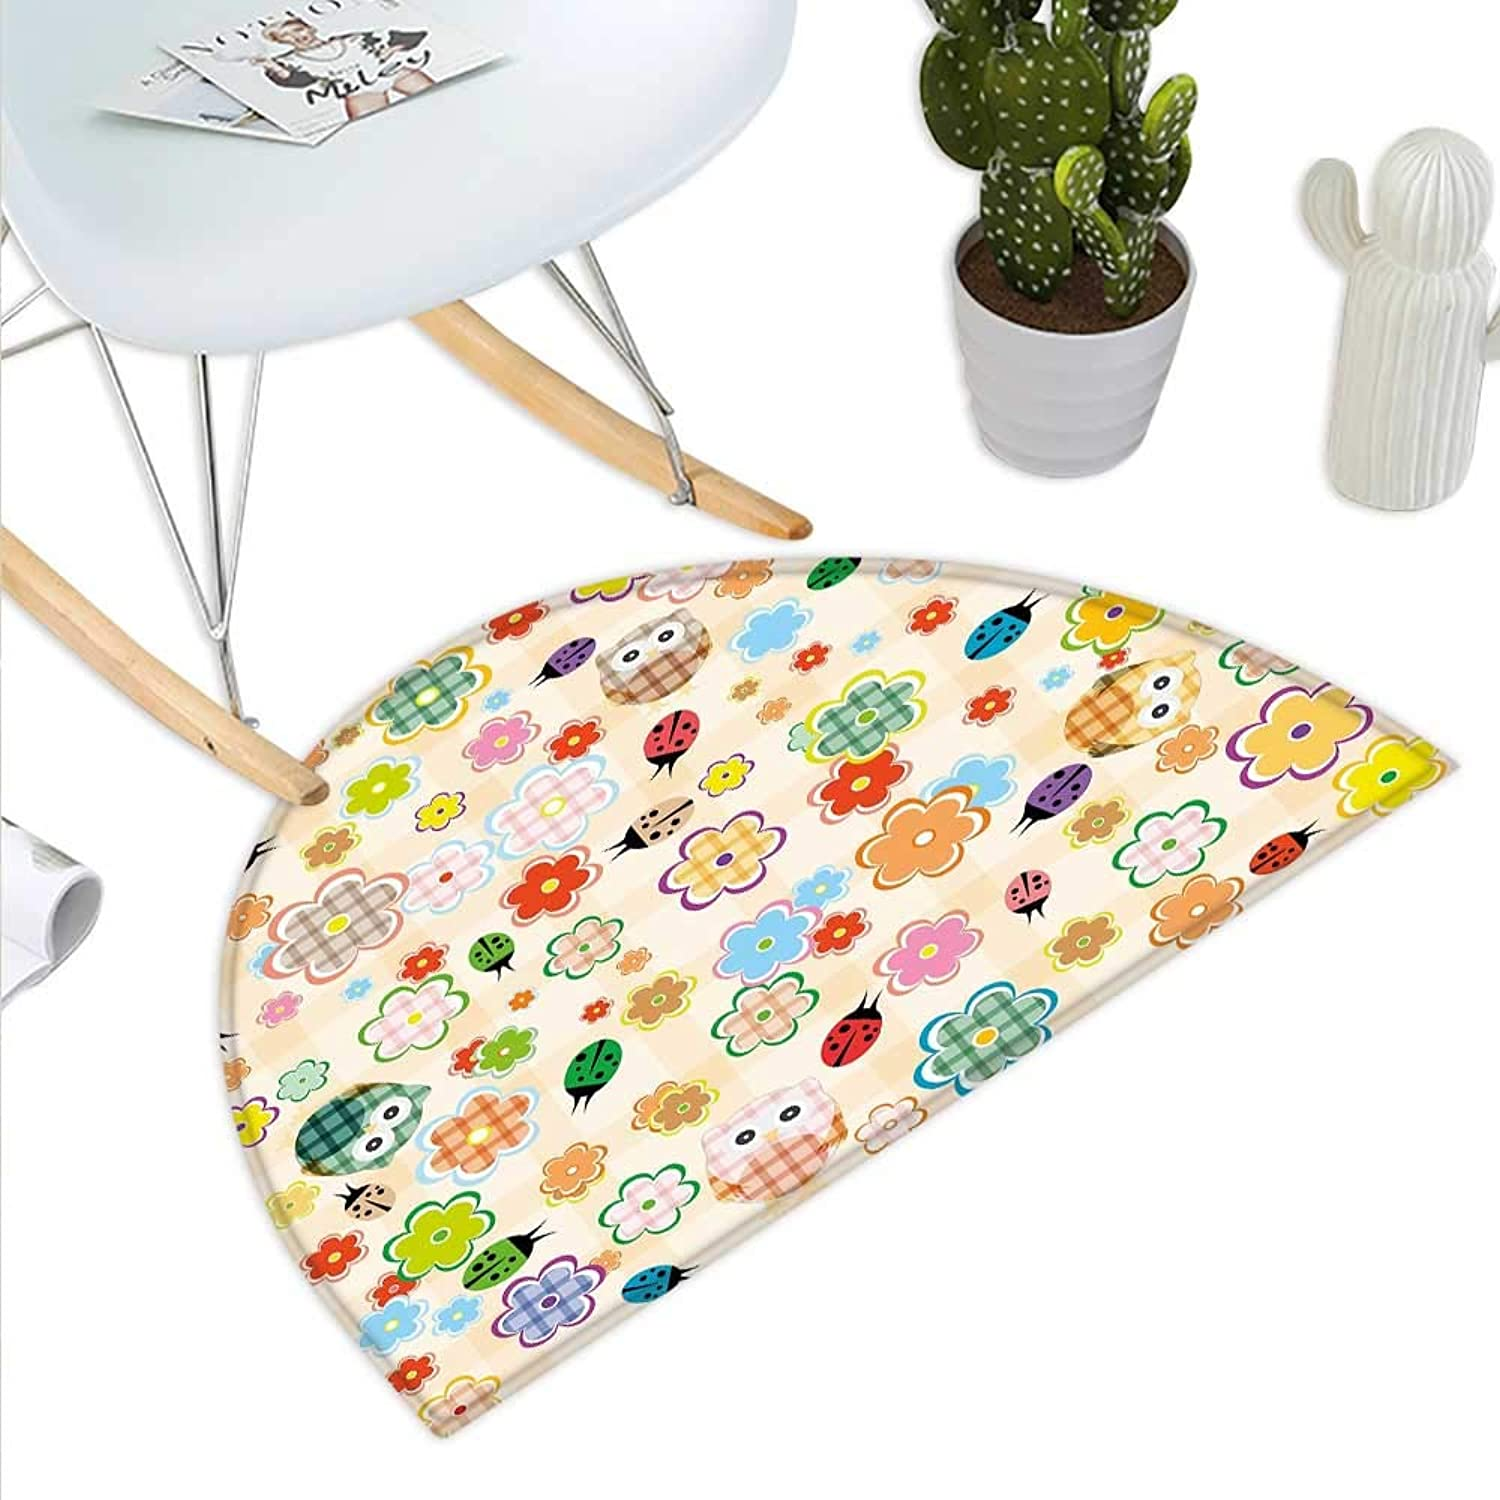 Nursery Semicircle Doormat Cute Owls and Flowers in colorful Drawing Style Nature Animal and Plant Life Fun Halfmoon doormats H 43.3  xD 64.9  Multicolor